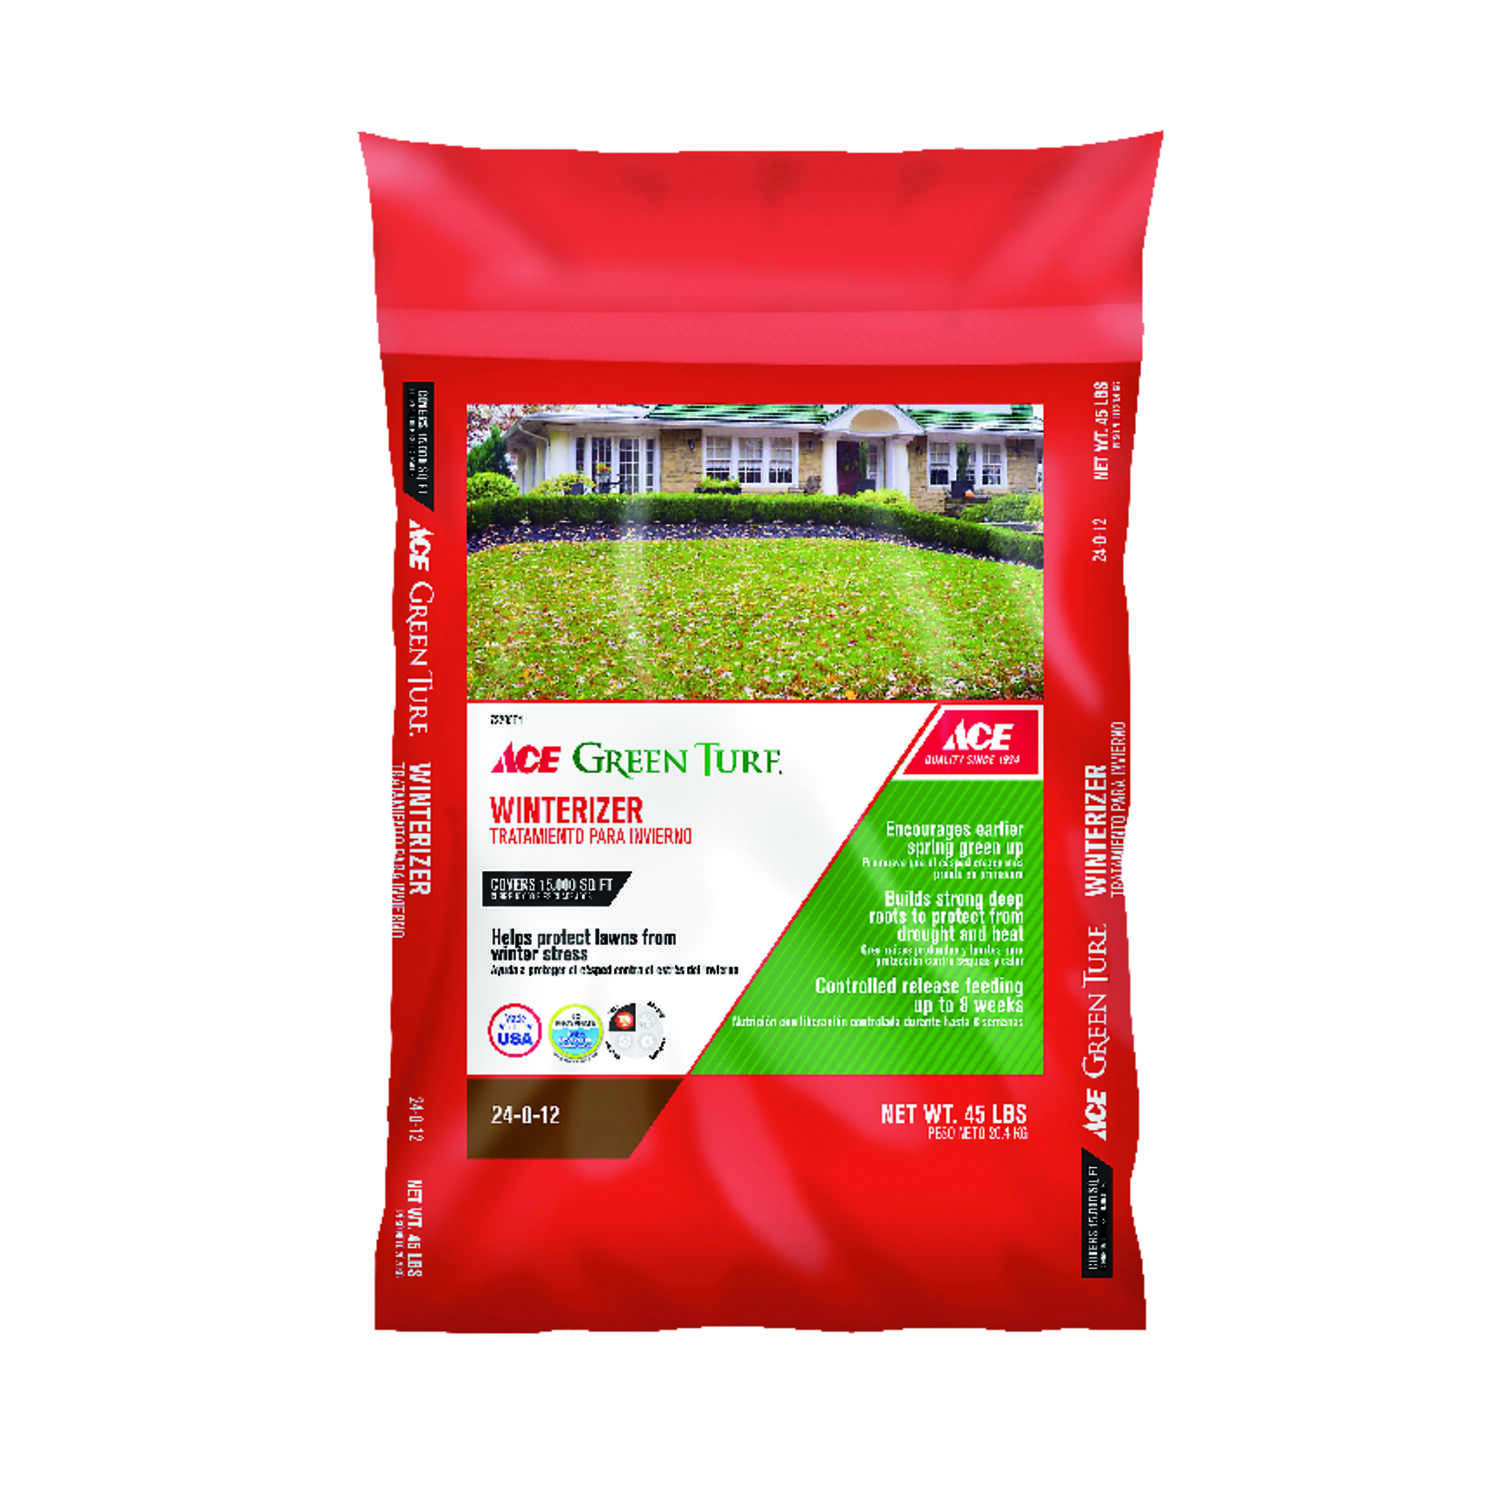 Ace  Green Turf  24-0-12  Winterizer Lawn Fertilizer  For All Grass Types 45 lb. 15000 sq. ft.